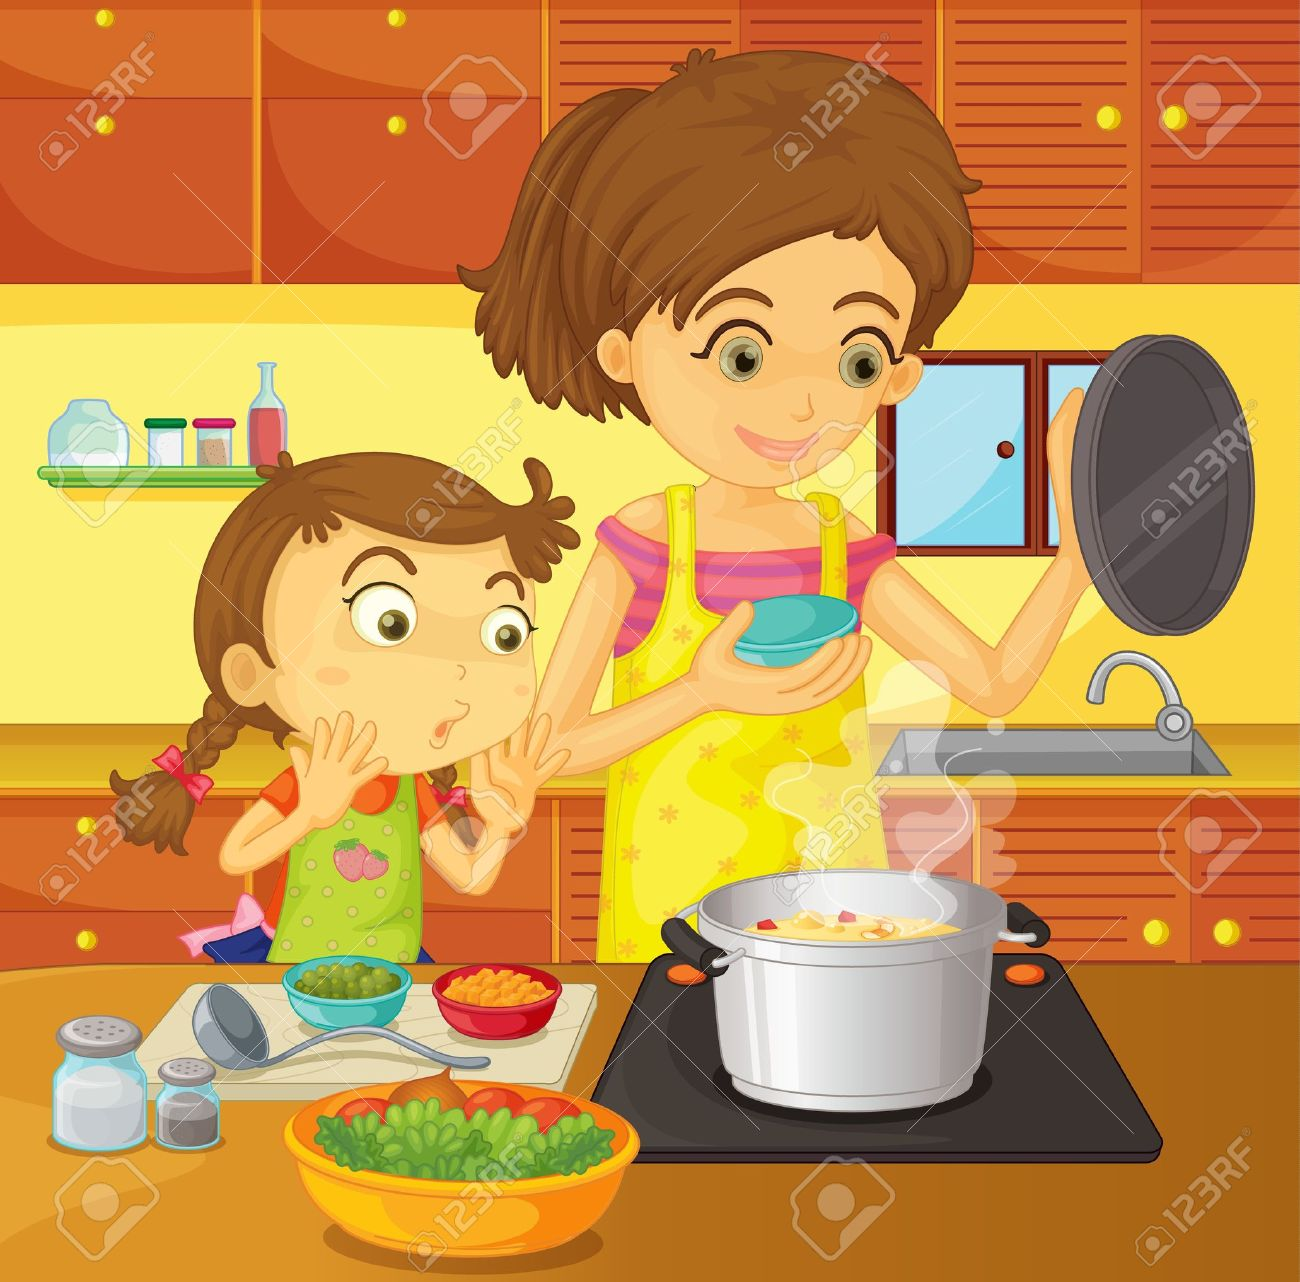 Selection of cartoons on cooking kitchens food and eating - Mother Cooking Illustration Of Helping At Home Concept Illustration